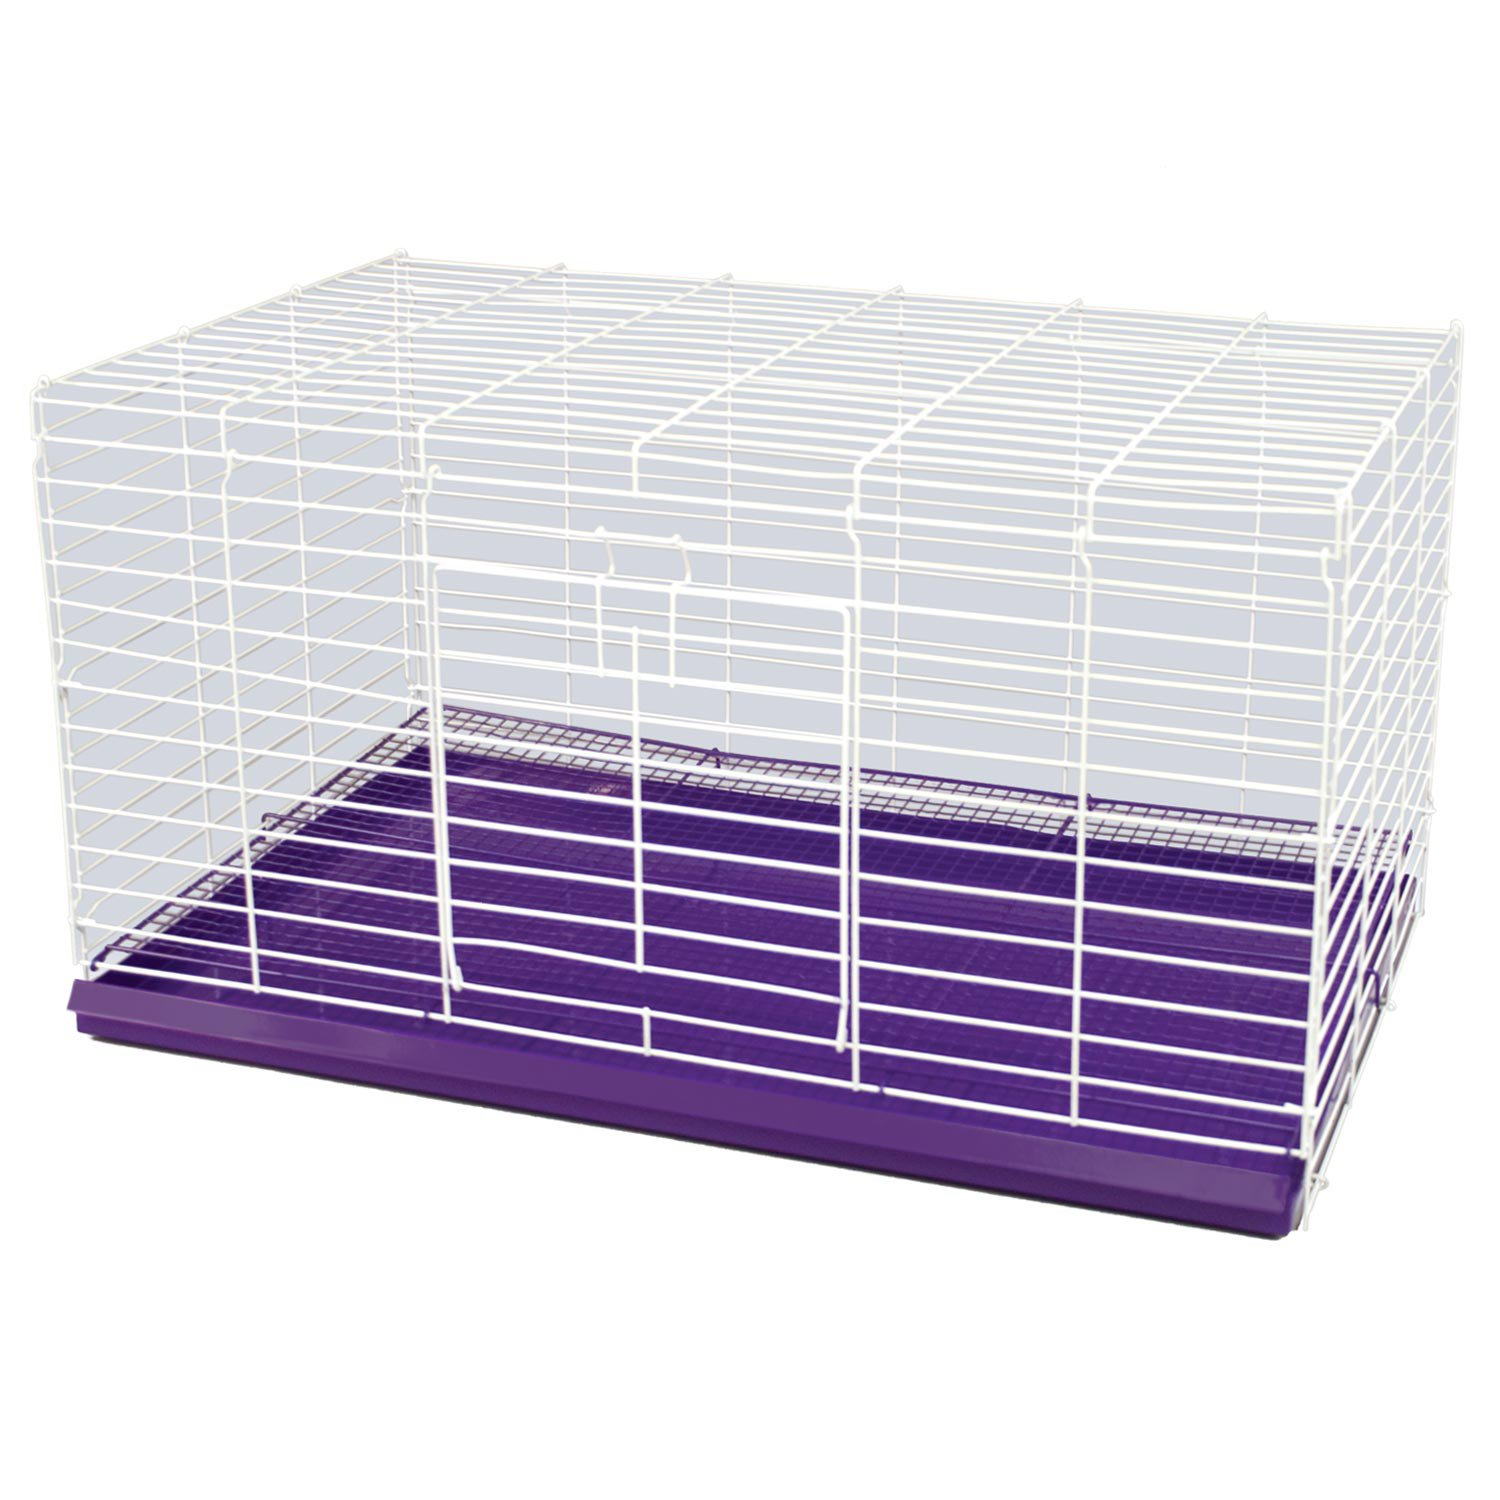 WARE Chew Proof Rabbit Cage